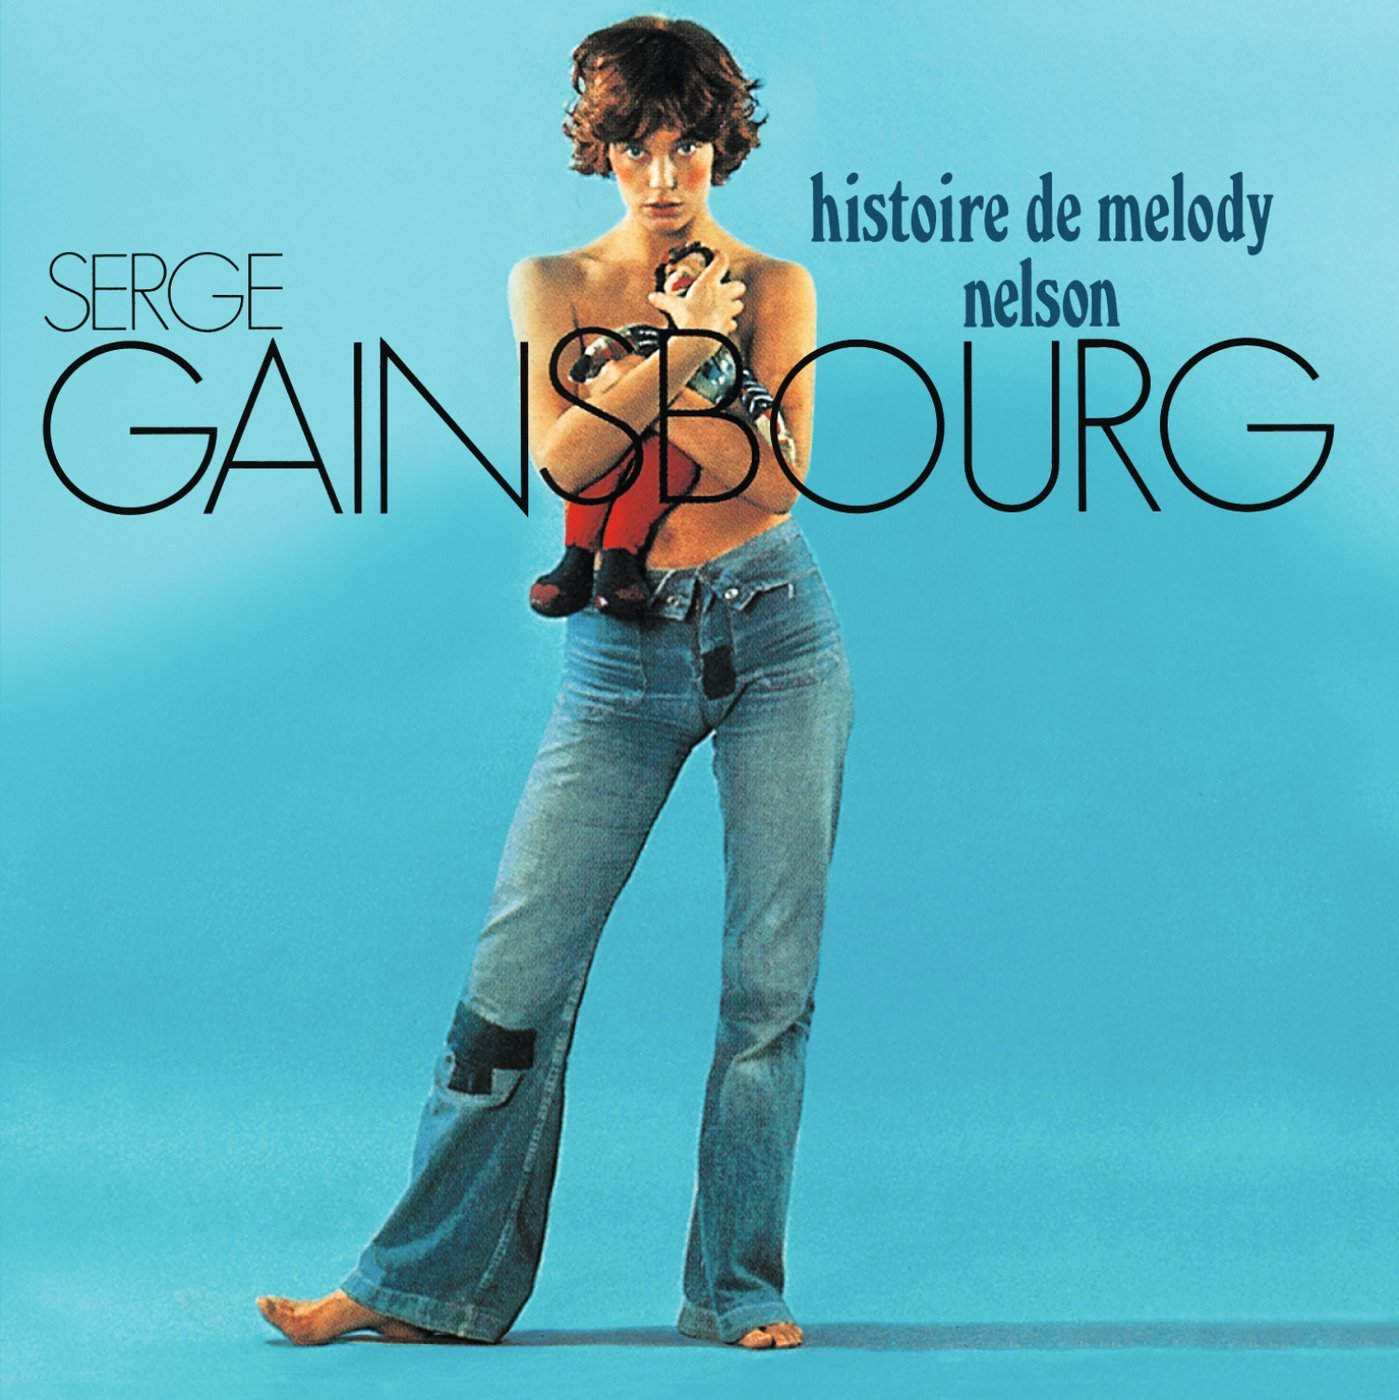 gainsbourg melody nelson vinyle